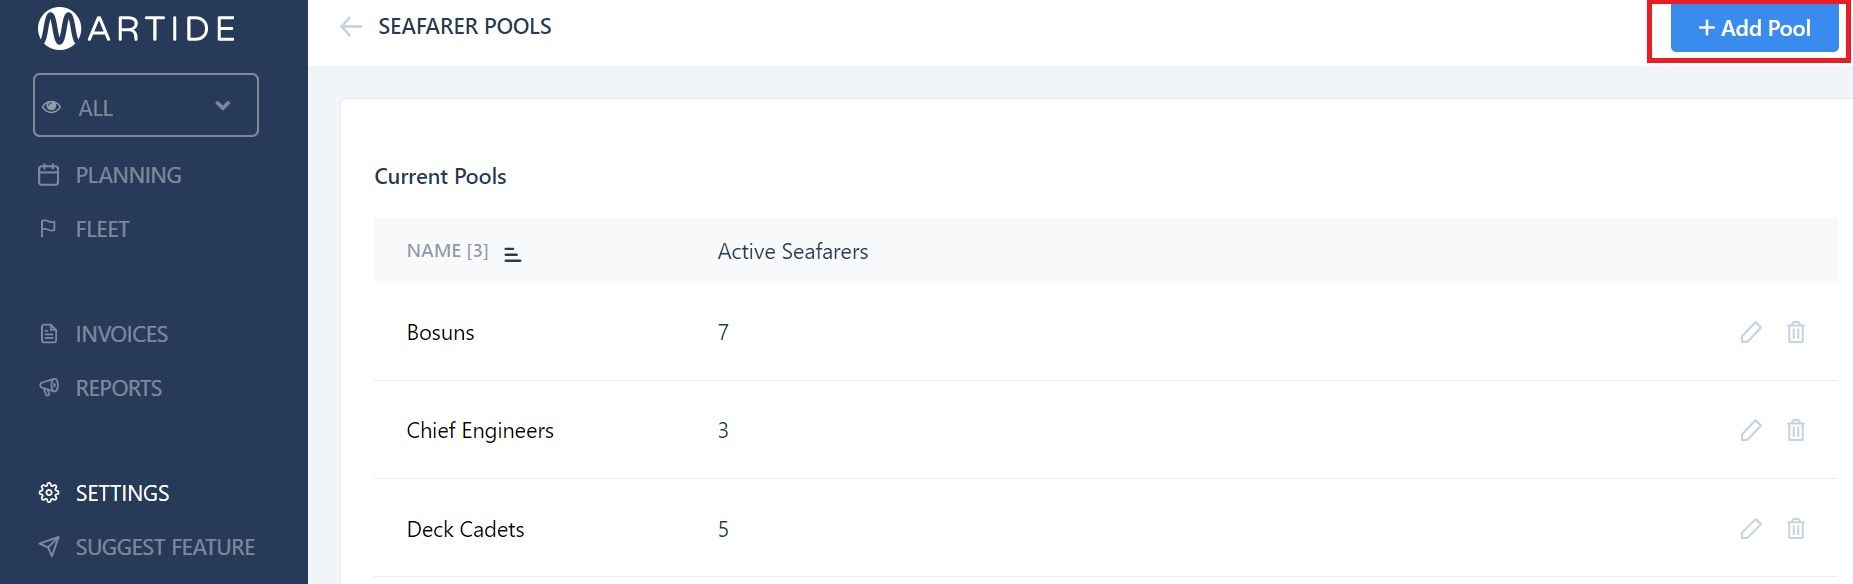 screenshot of Martide's maritime recruitment website showing the seafarer pools page